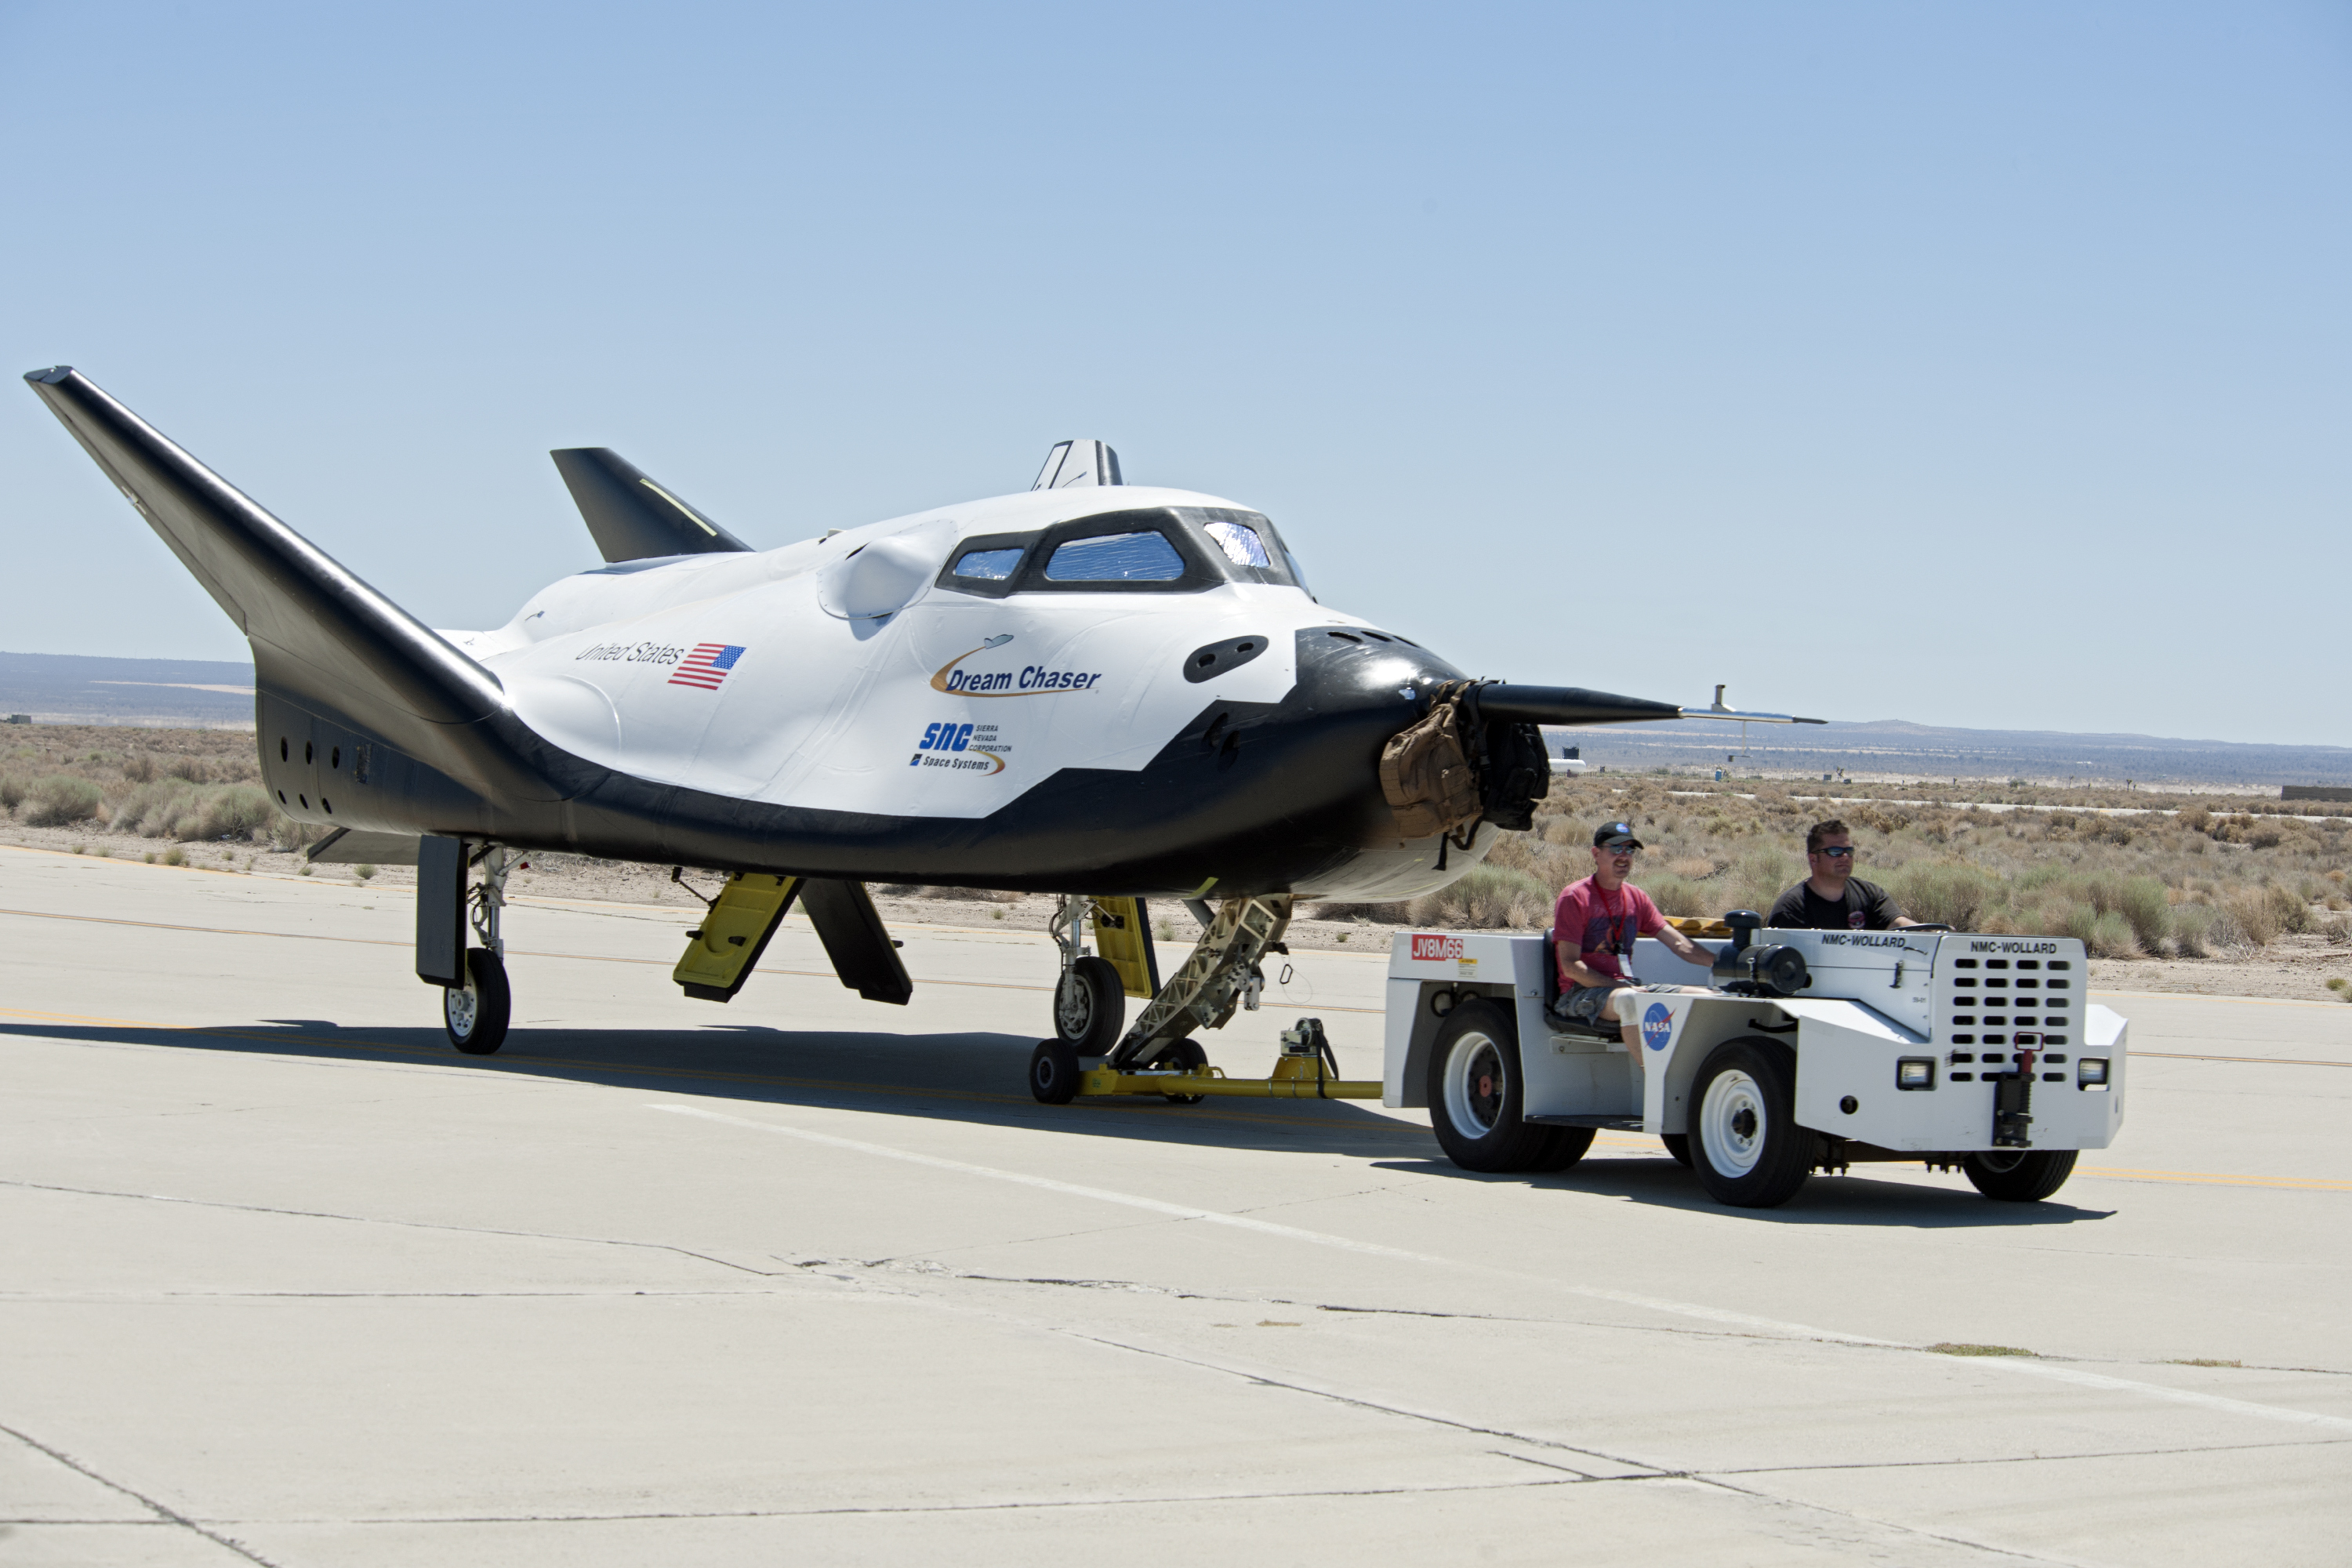 Dream_Chaser_pre-drop_tests.3.jpg